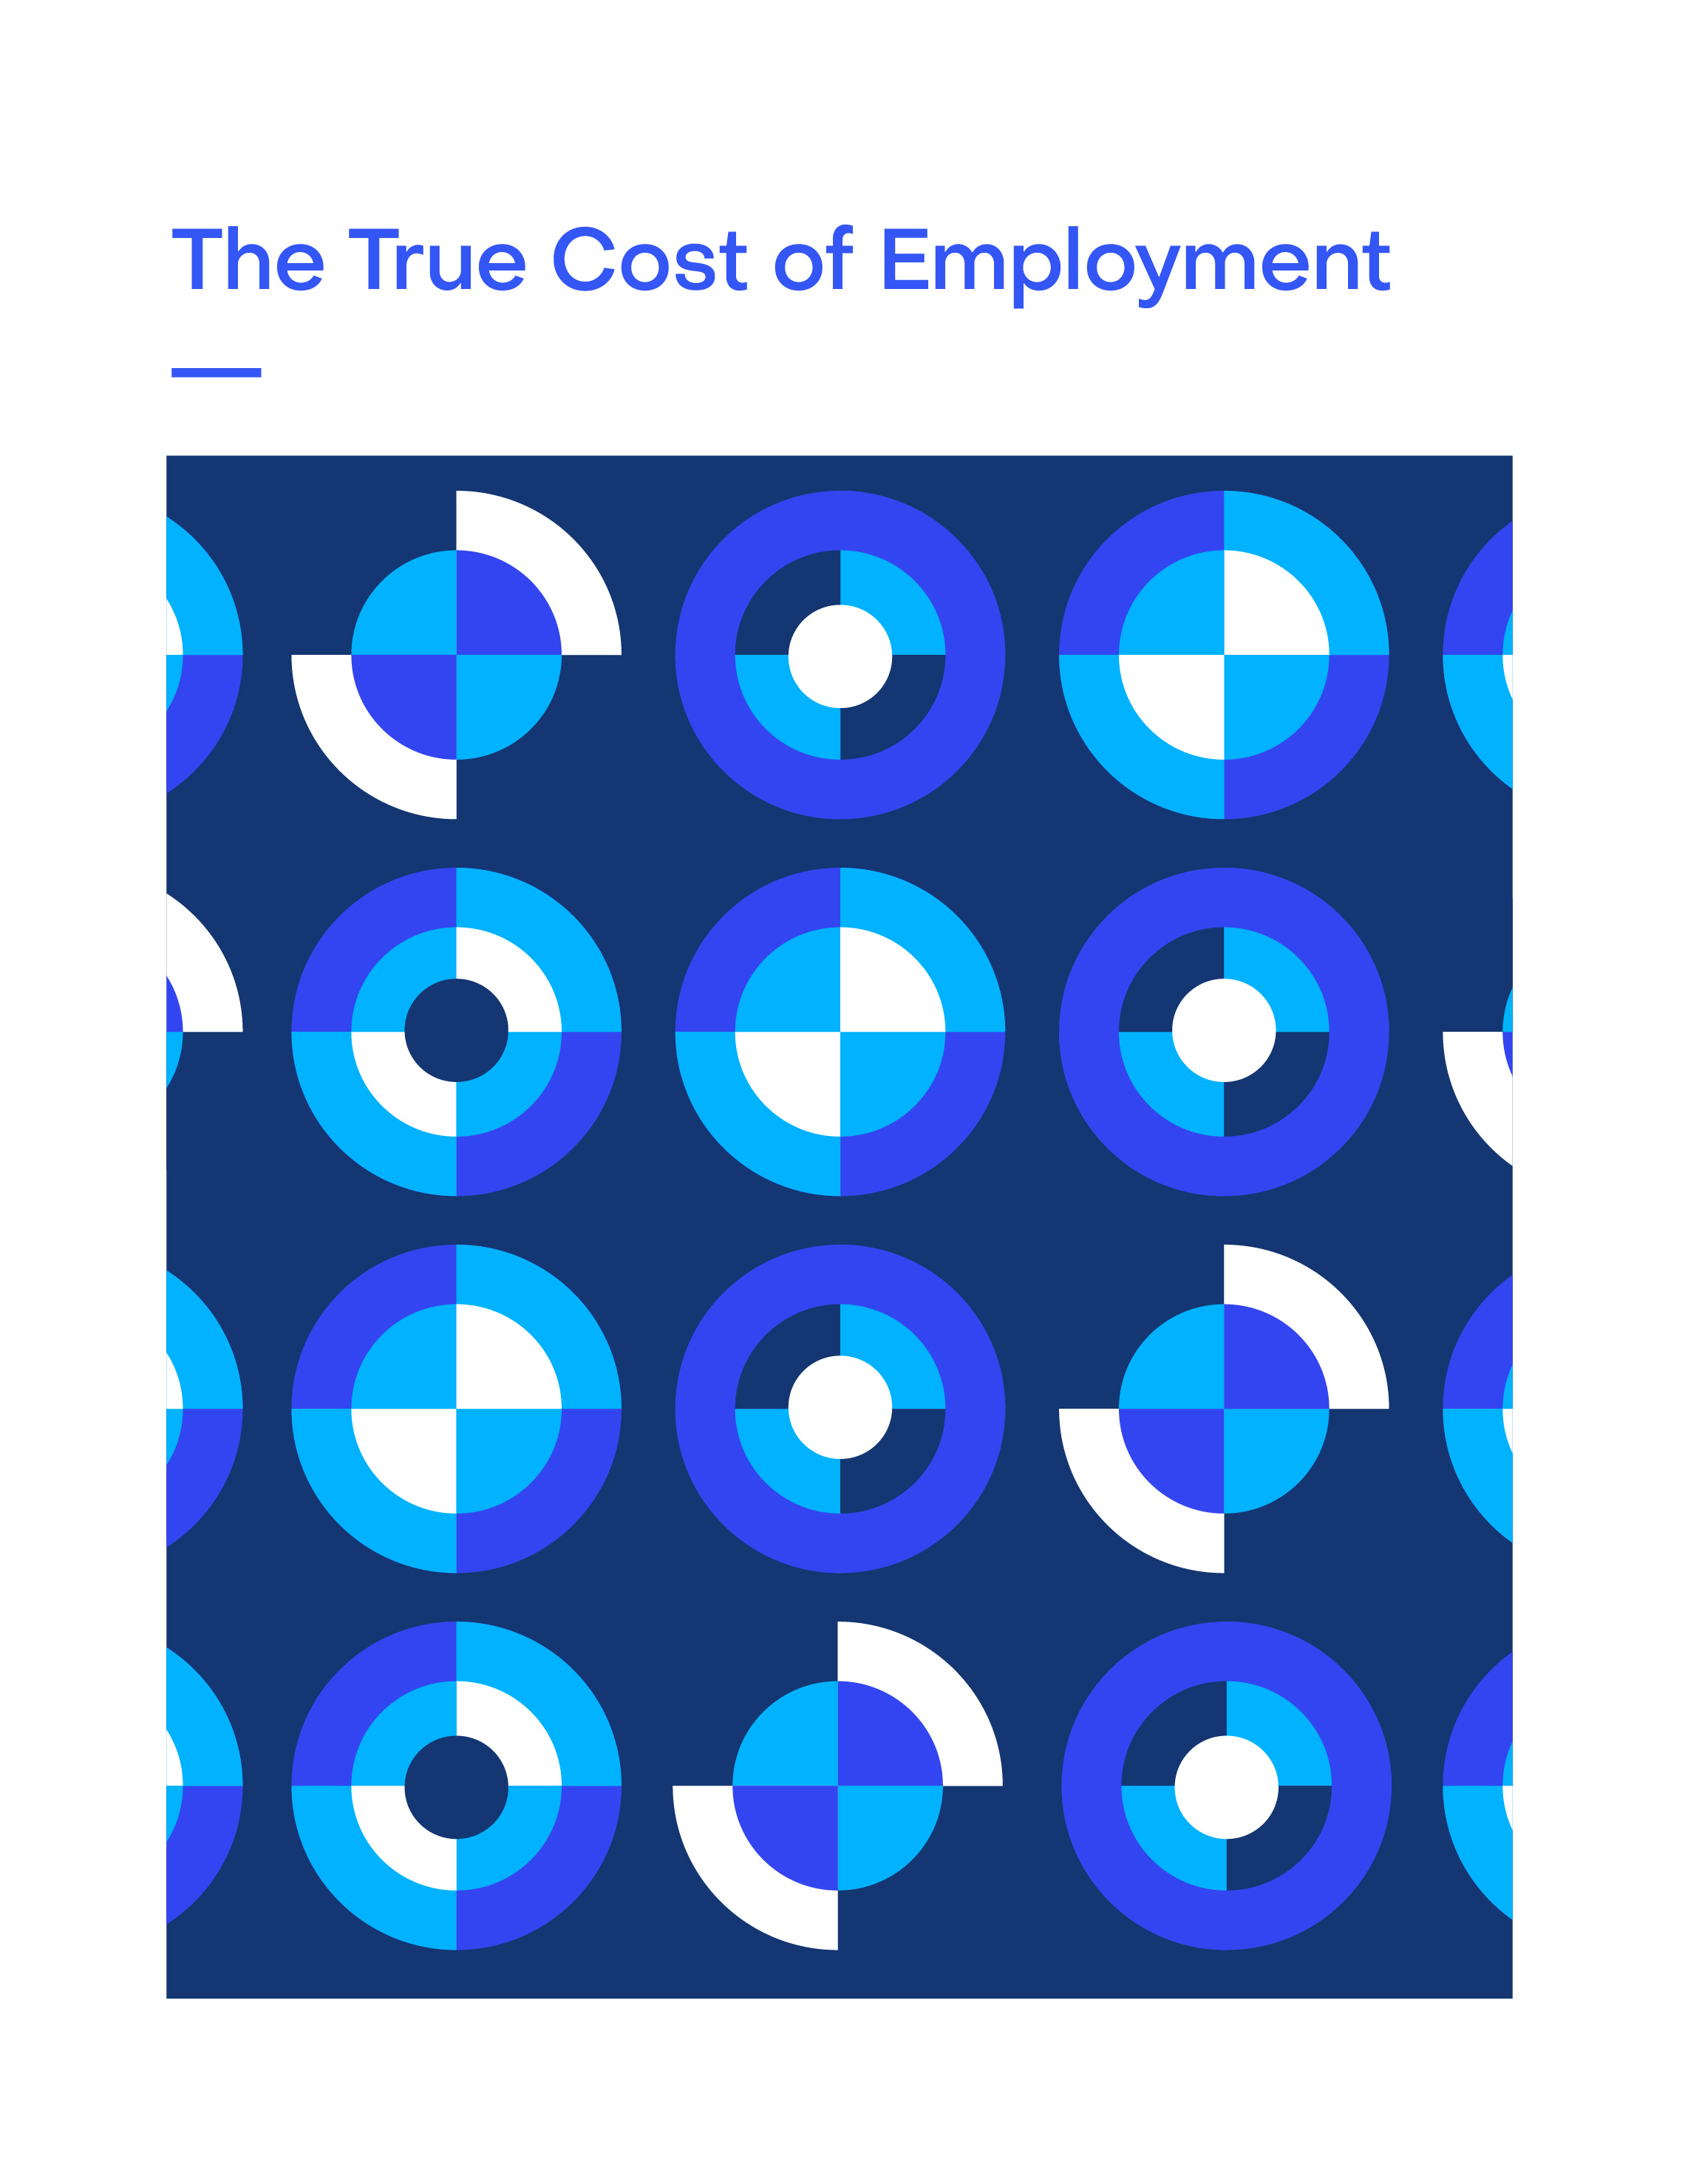 True Cost of Employment: how much it costs to employ an hourly worker on your team